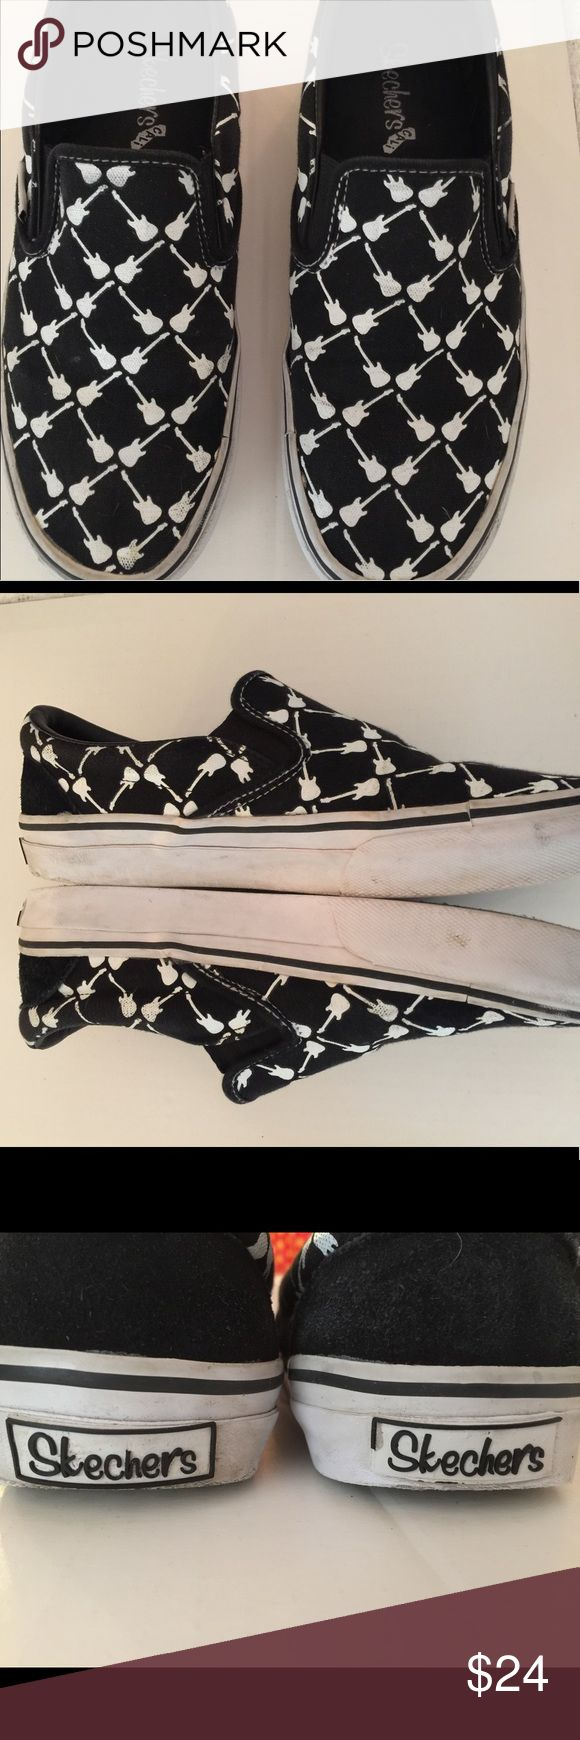 Mens guitar Skechers sneakers Slip on (unisex) Black and white sneakers, with guitar  pattern .mens 10 (seem like 9.5) woman's 11. sketchers Shoes Athletic Shoes